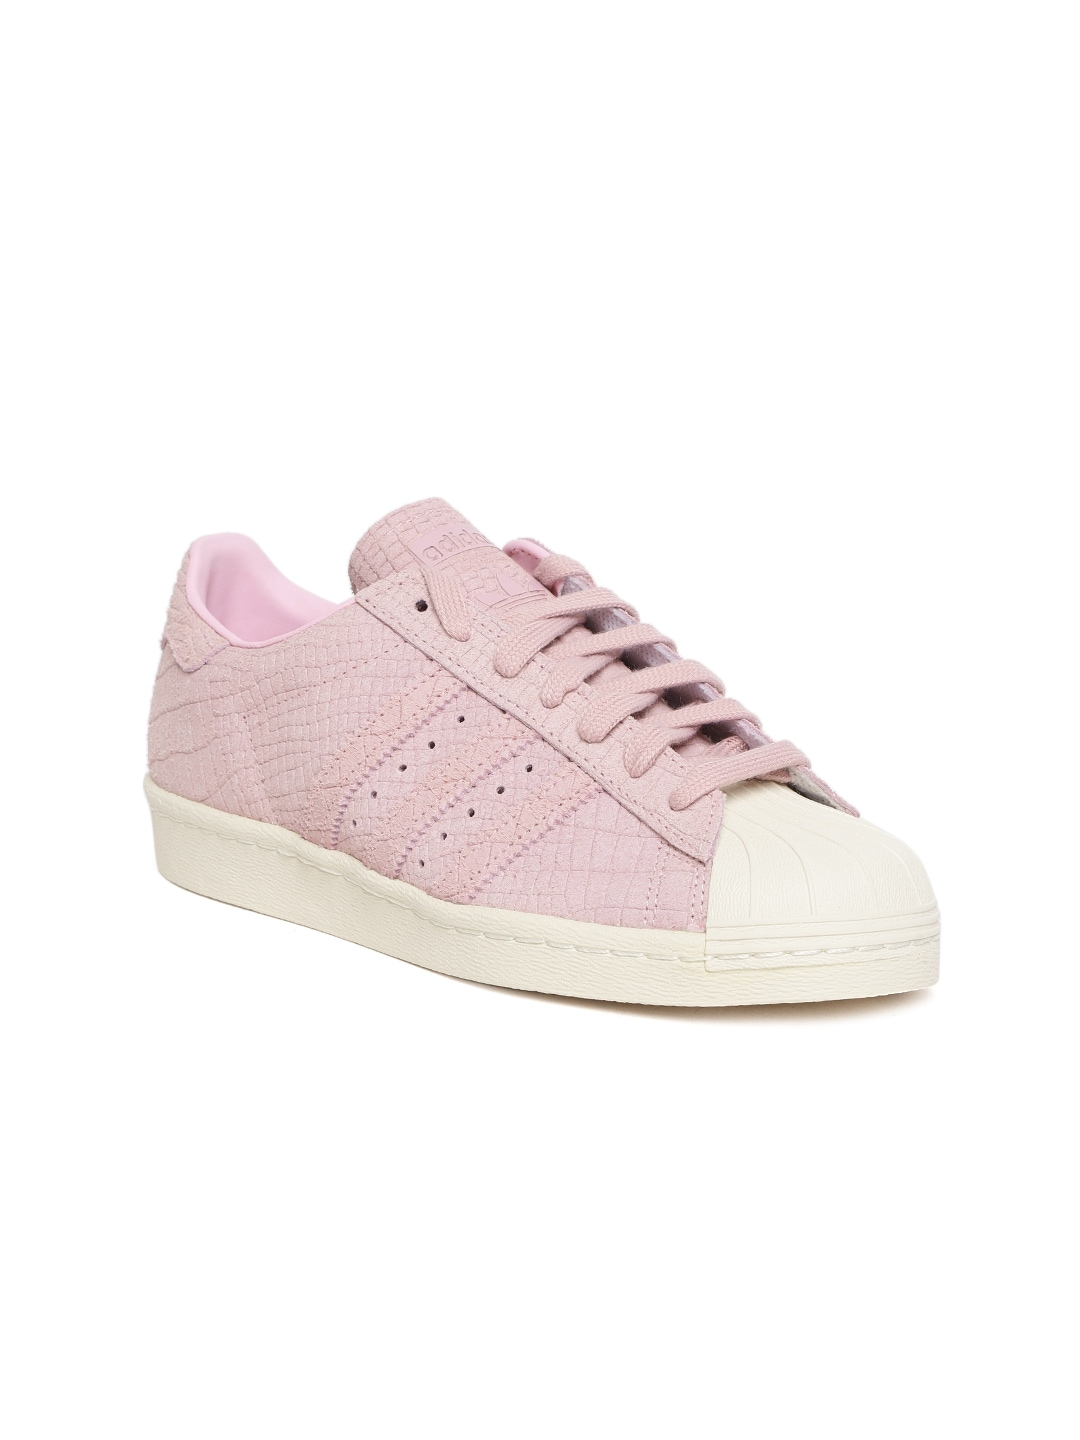 2e7a39081659c Adidas Superstar Shoes - Buy Adidas Superstar Shoes Online - Myntra